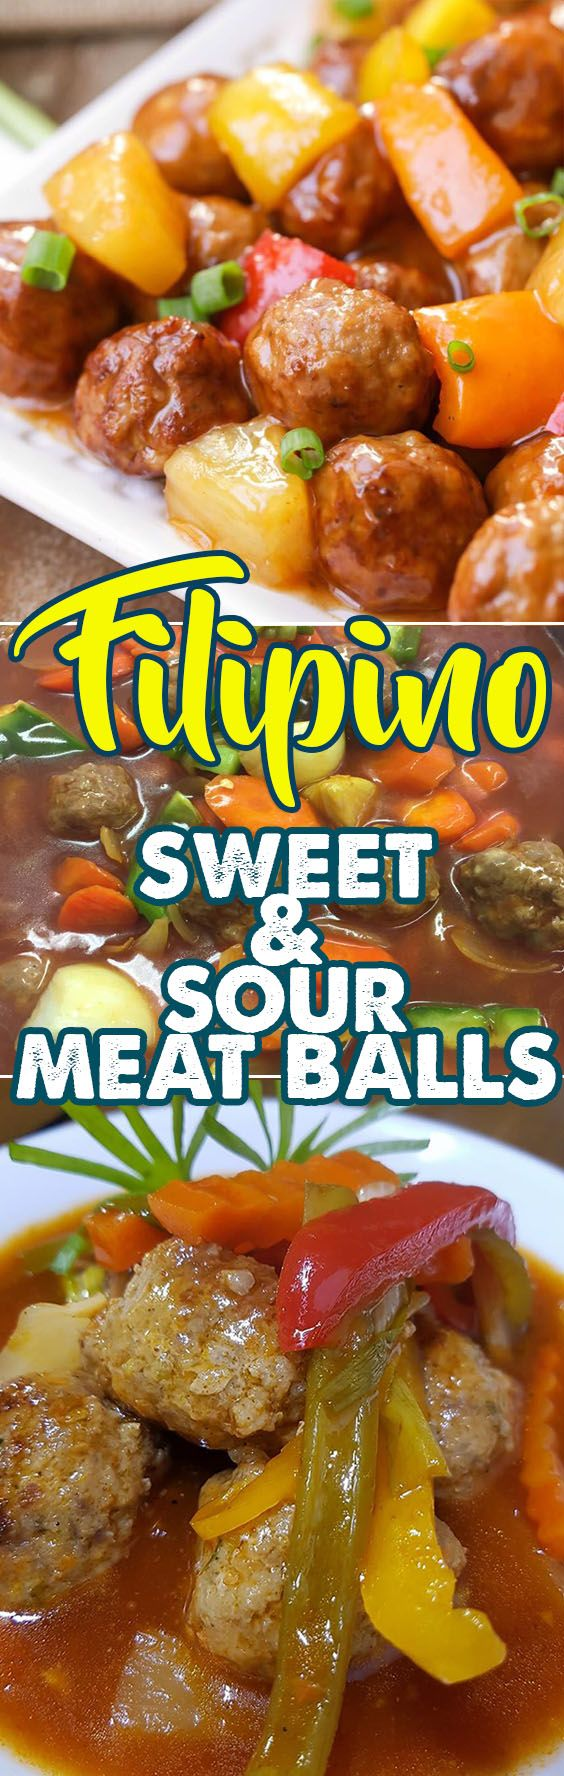 Sweet and Sour Meatballs Recipe might seem a little childish to you but this dish is in no way childish in fact adults love meatballs too especially when the taste is just right and the sauce is perfect. This dish is easy and fun to make and it's also a little messy but that's where the fun lies.